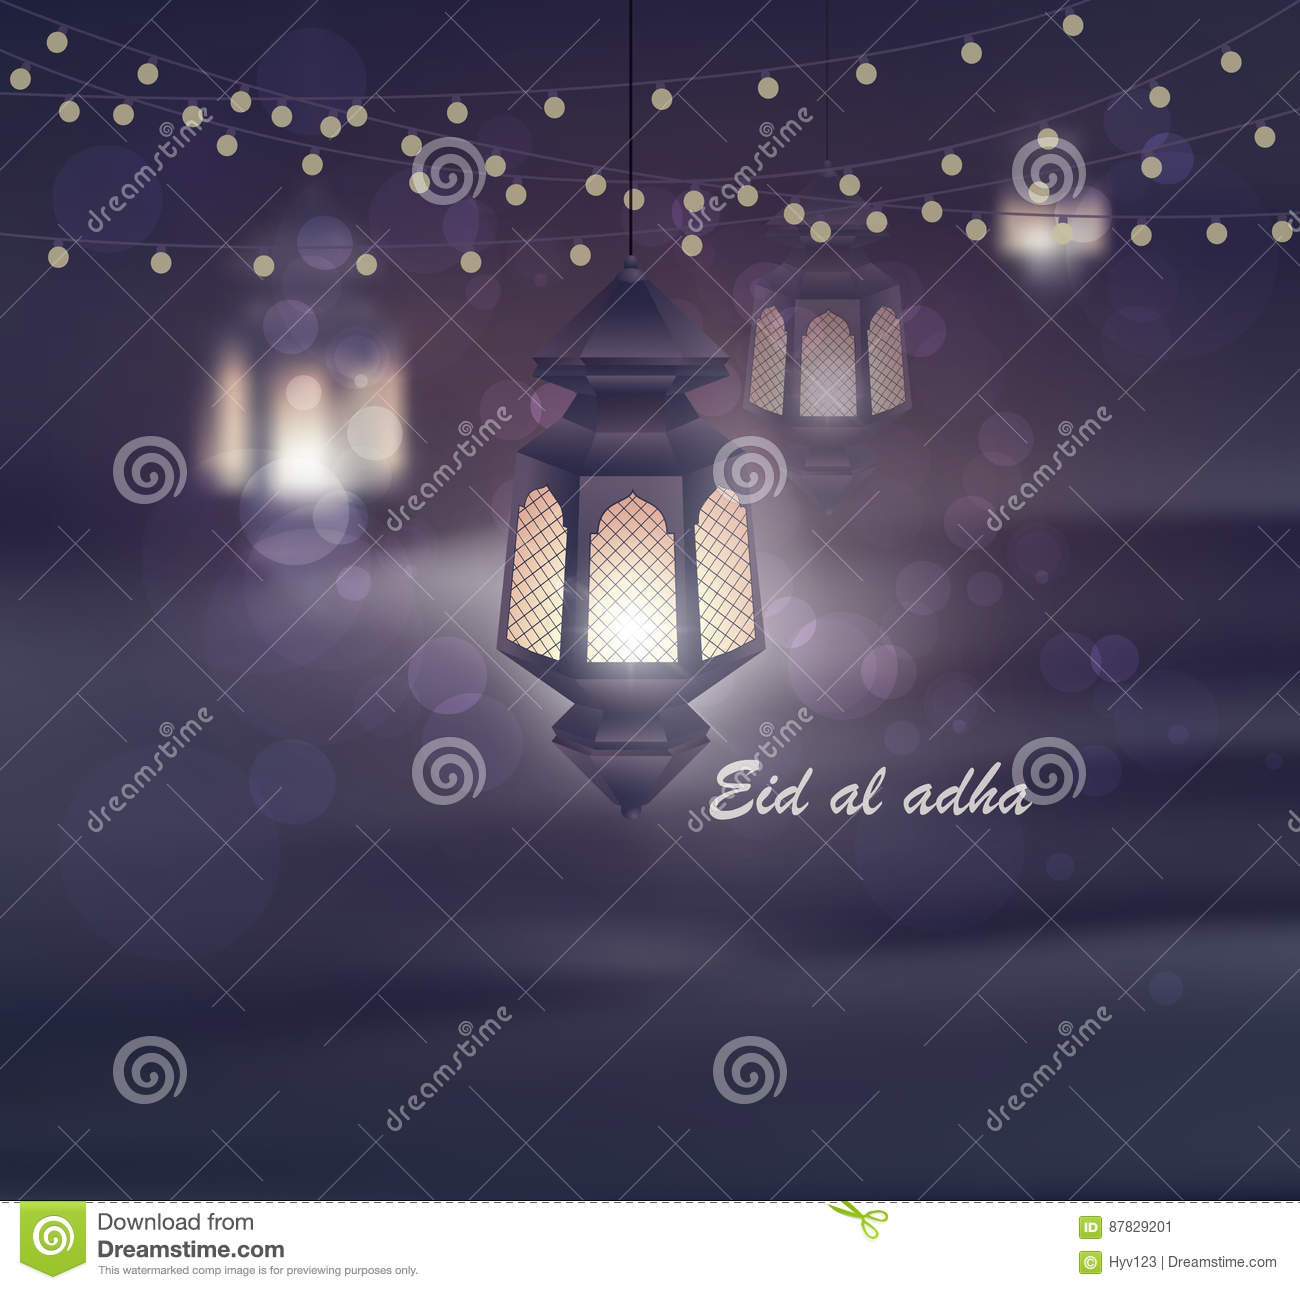 Most Inspiring Different Eid Al-Fitr Greeting - eid-al-adha-greeting-card-template-eid-al-fitr-muslim-religious-holiday-lanterns-blurred-lights-background-mosque-87829201  Photograph_653077 .jpg